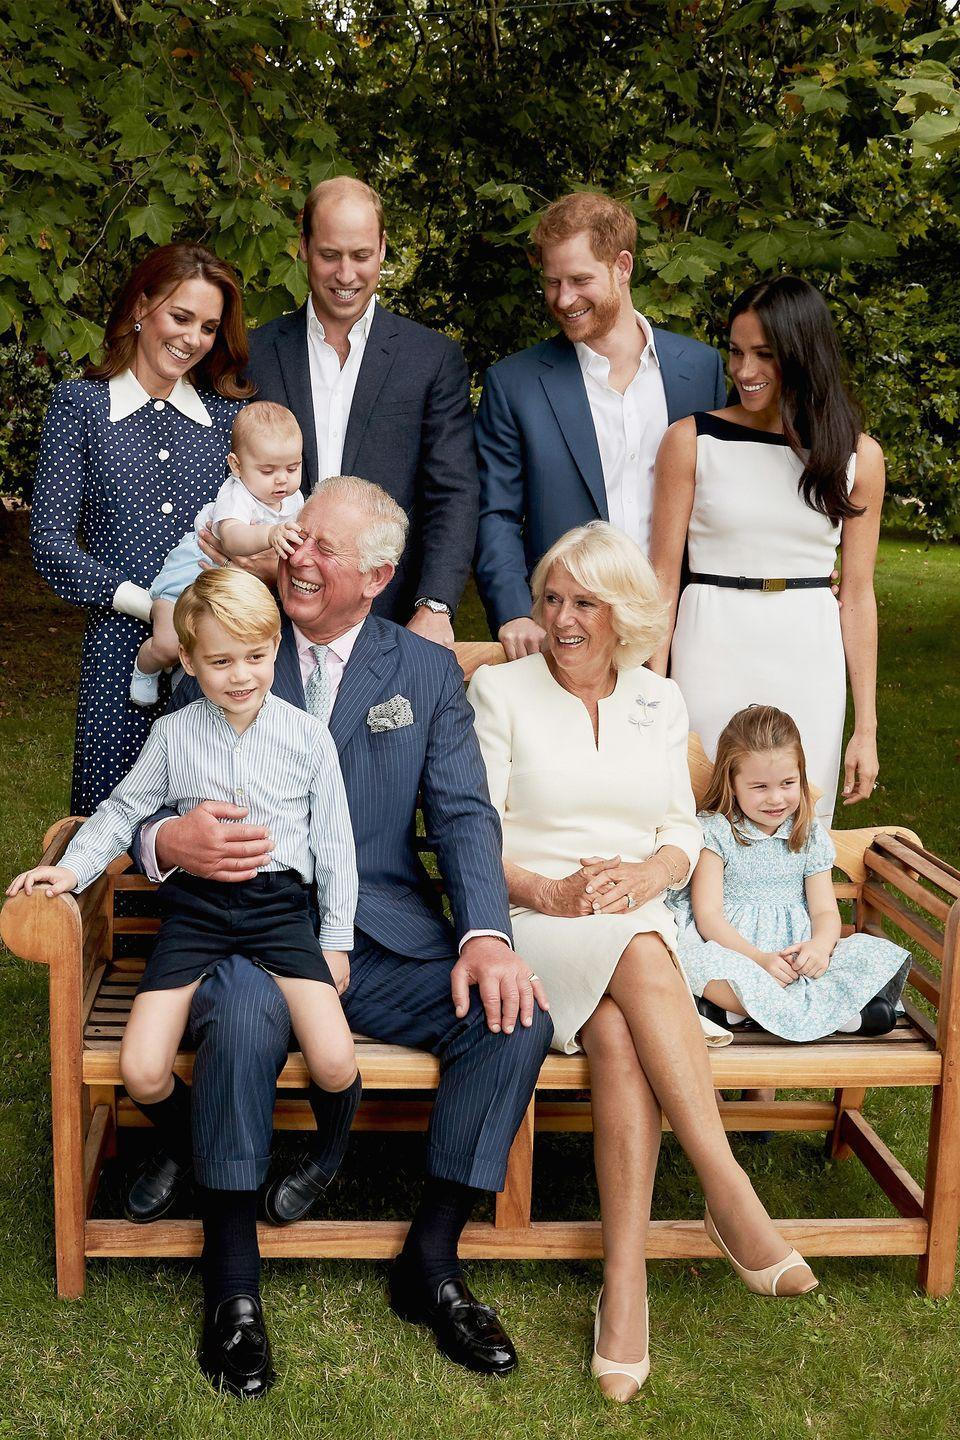 <p>A heartwarming family portrait, including his sons, Prince William and Prince Harry, and their wives, Kate Middleton and Meghan Markle.</p>